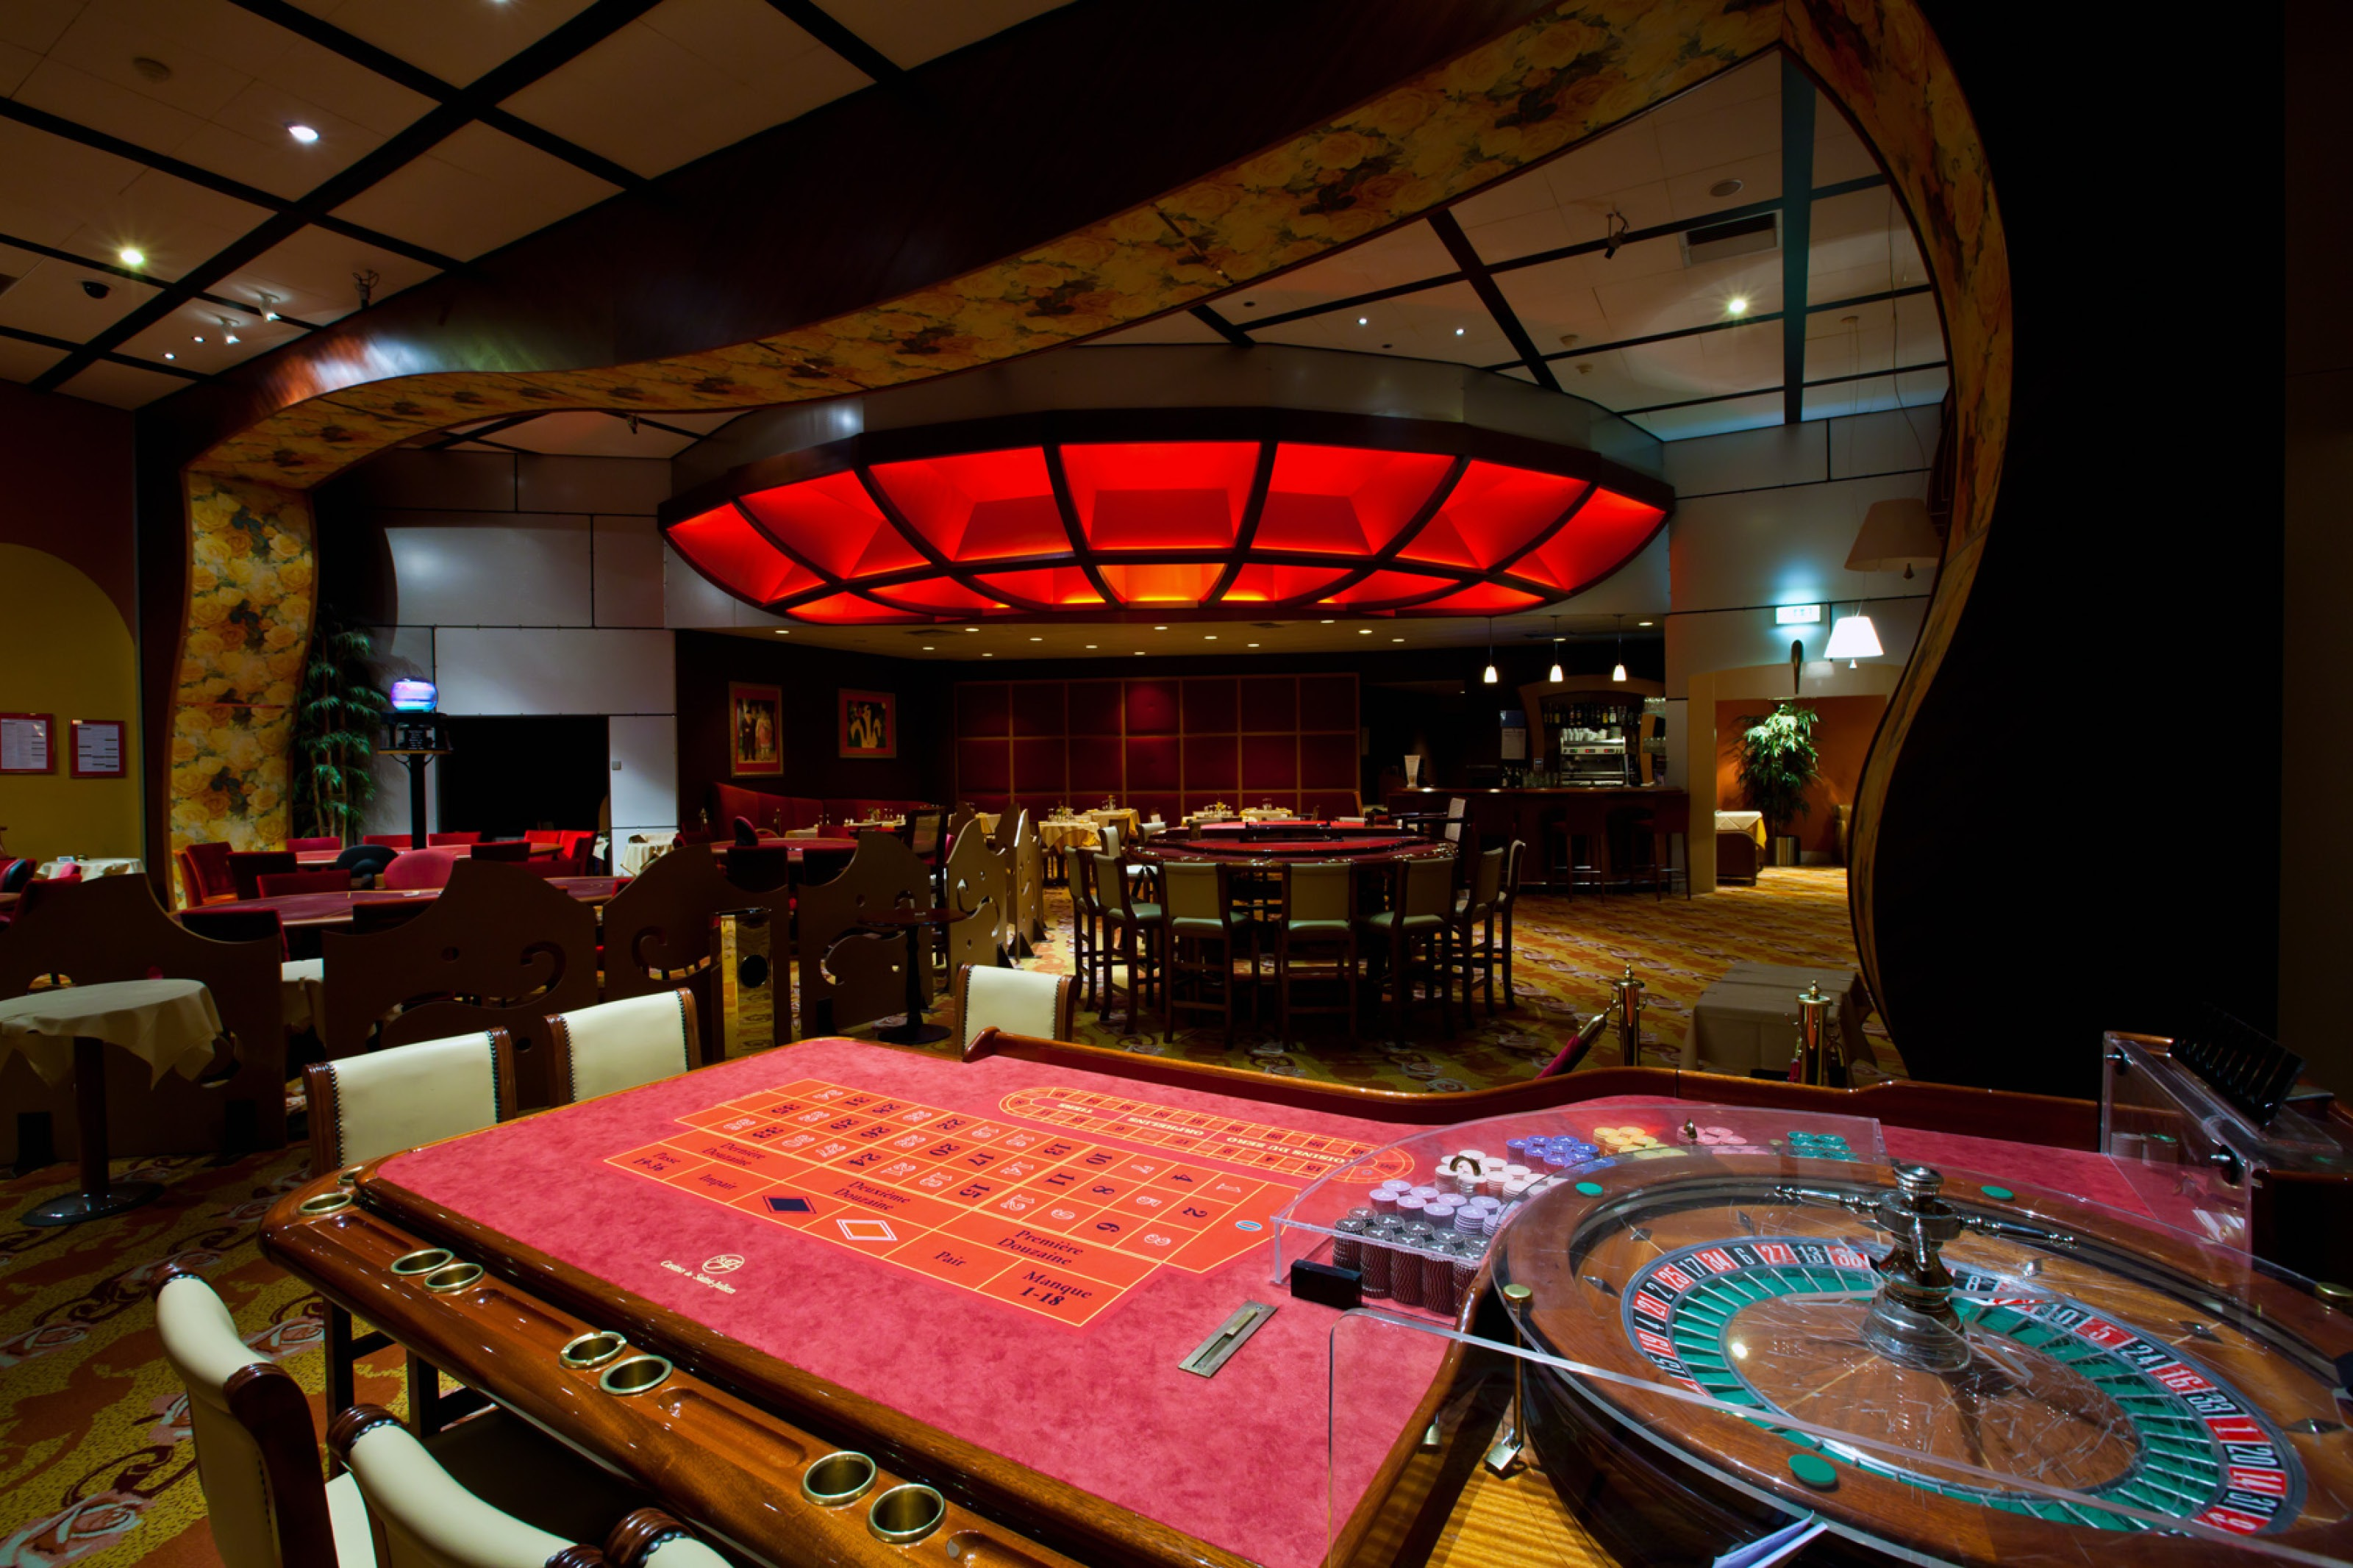 Le casino de saint julien en genevois action poker club